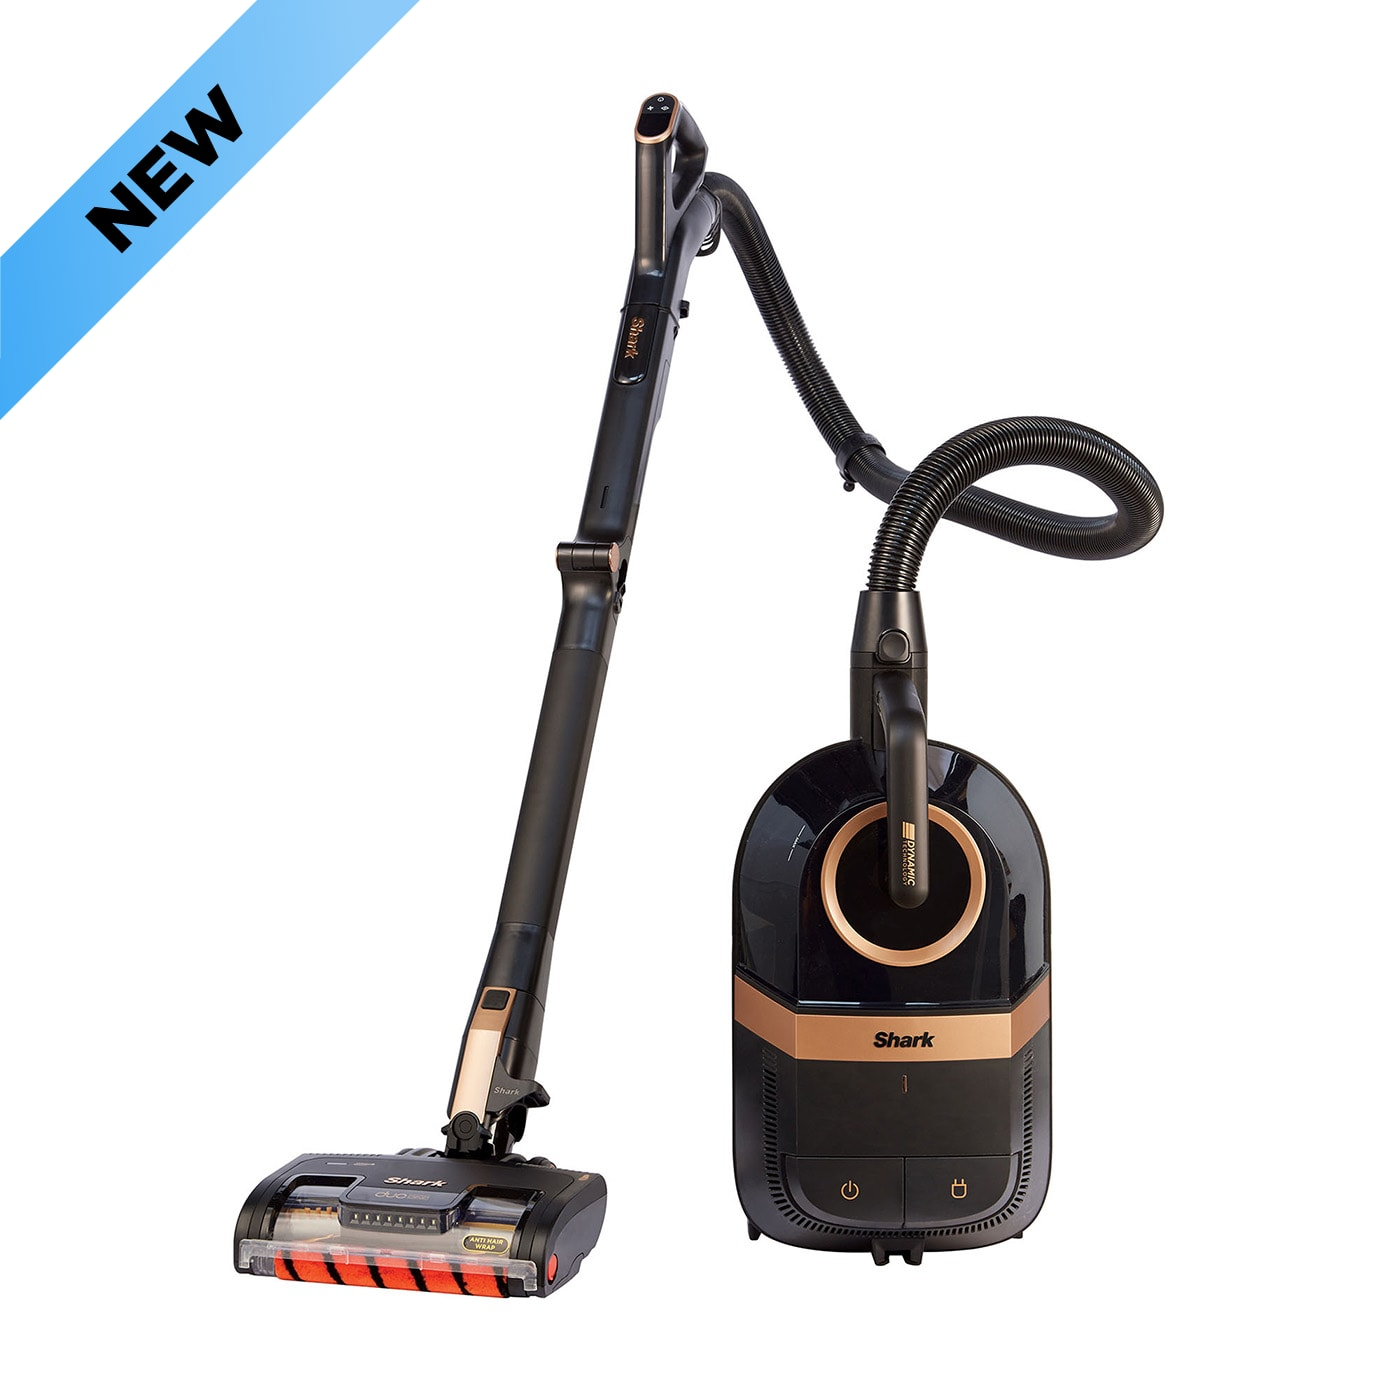 Shark Bagless Cylinder Vacuum Cleaner with Dynamic Technology, Anti Hair Wrap & DuoClean, Pet Model [CZ500UKT] product photo